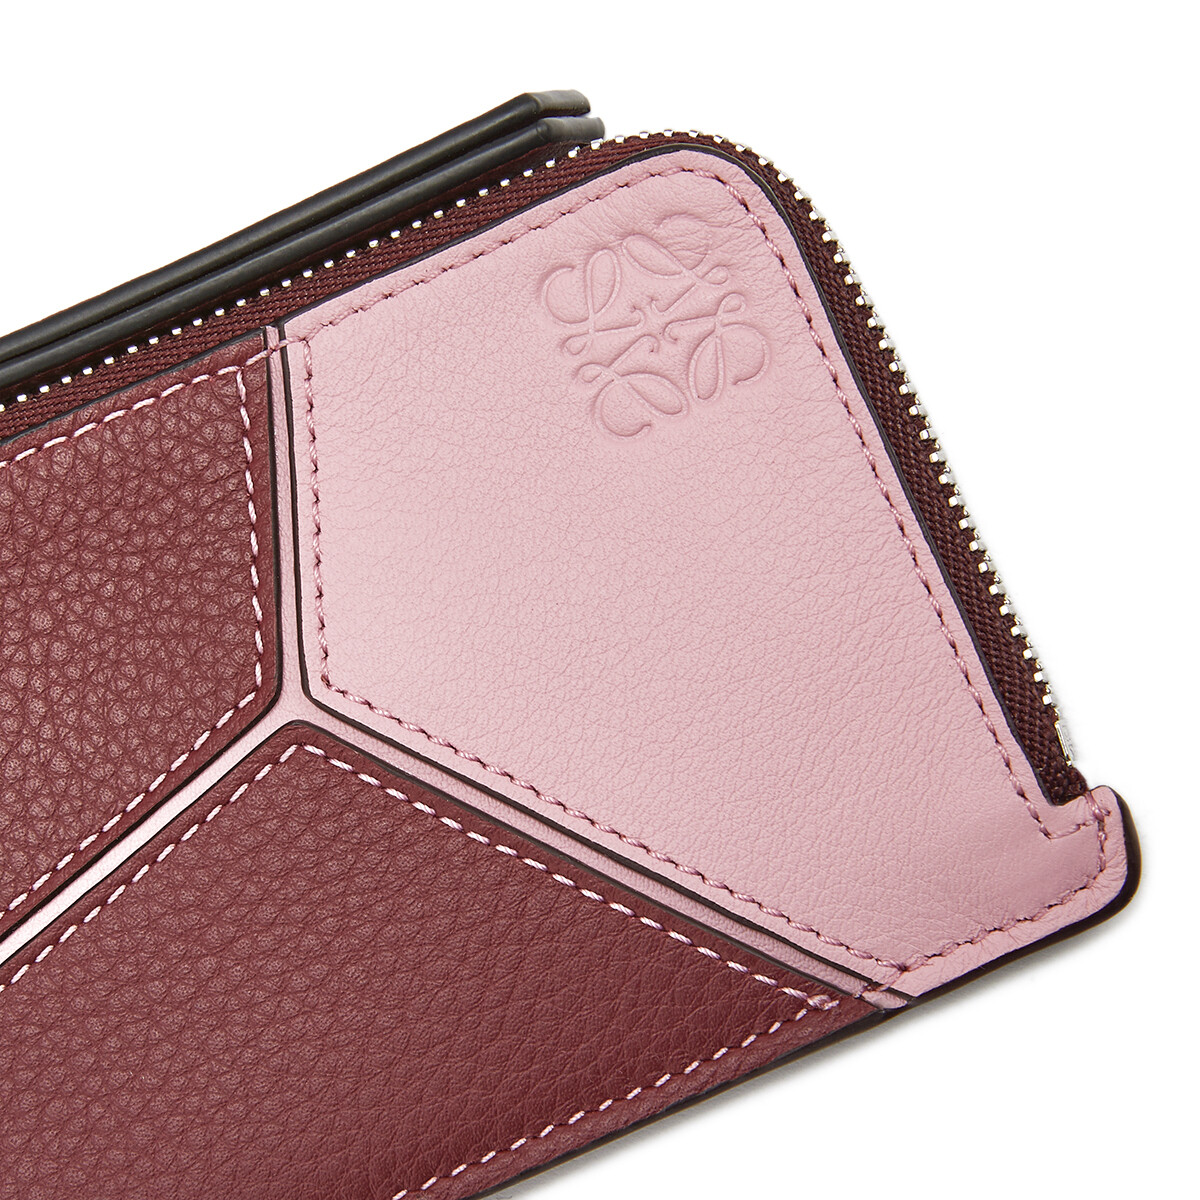 LOEWE Puzzle Coin Cardholder Wine/Pastel Pink front